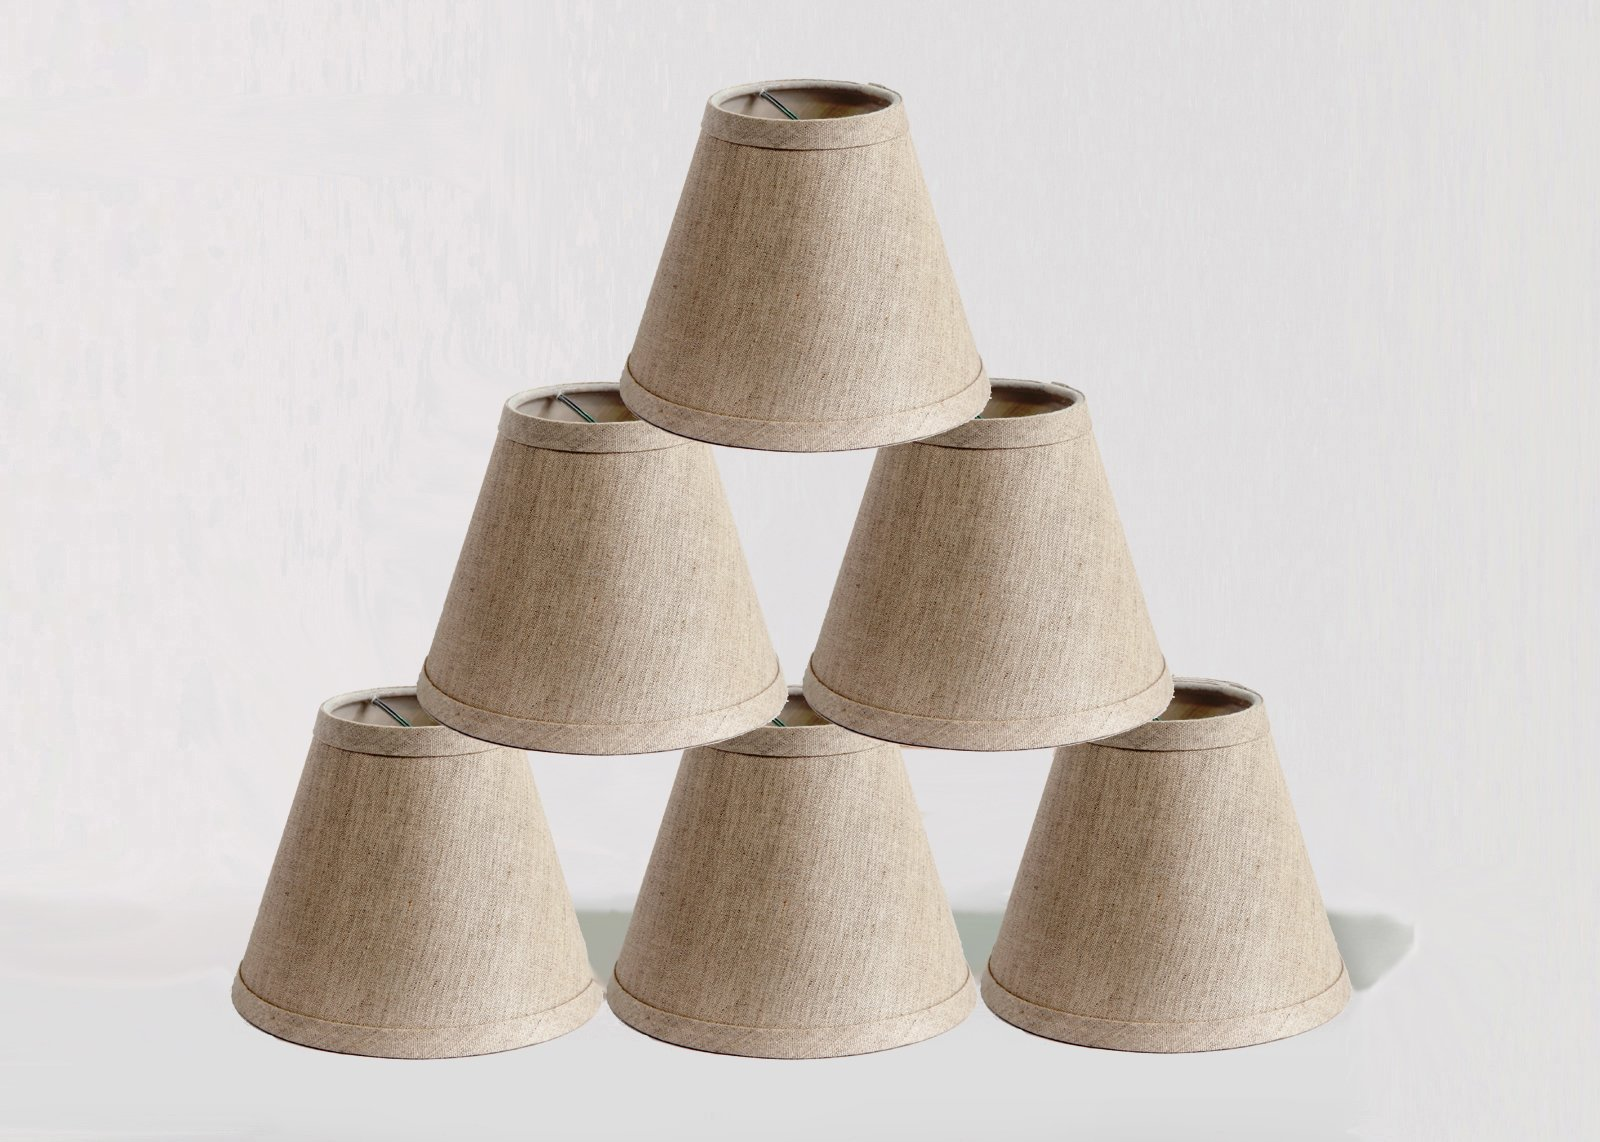 Urbanest Pure Linen Chandelier Lamp Shades, 6-inch, Hardback Clip On, Oatmeal(set of 6)